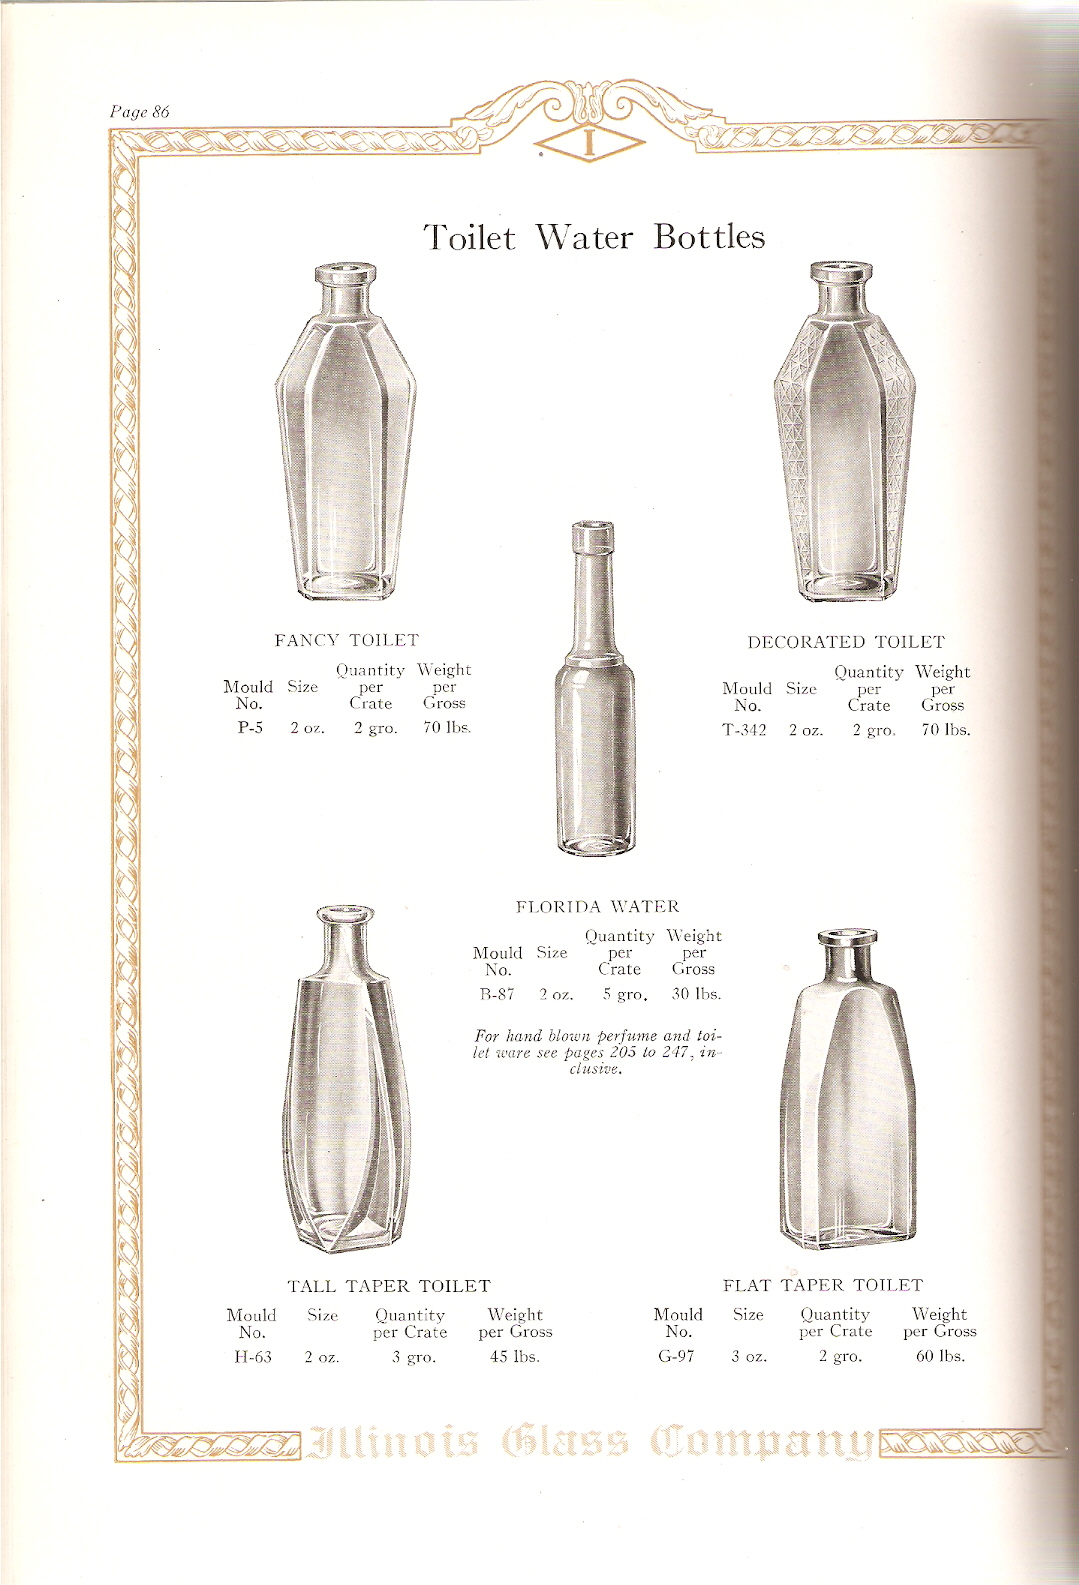 Illinois glass co 1926 catalog page 86 toilet water bottles biocorpaavc Gallery